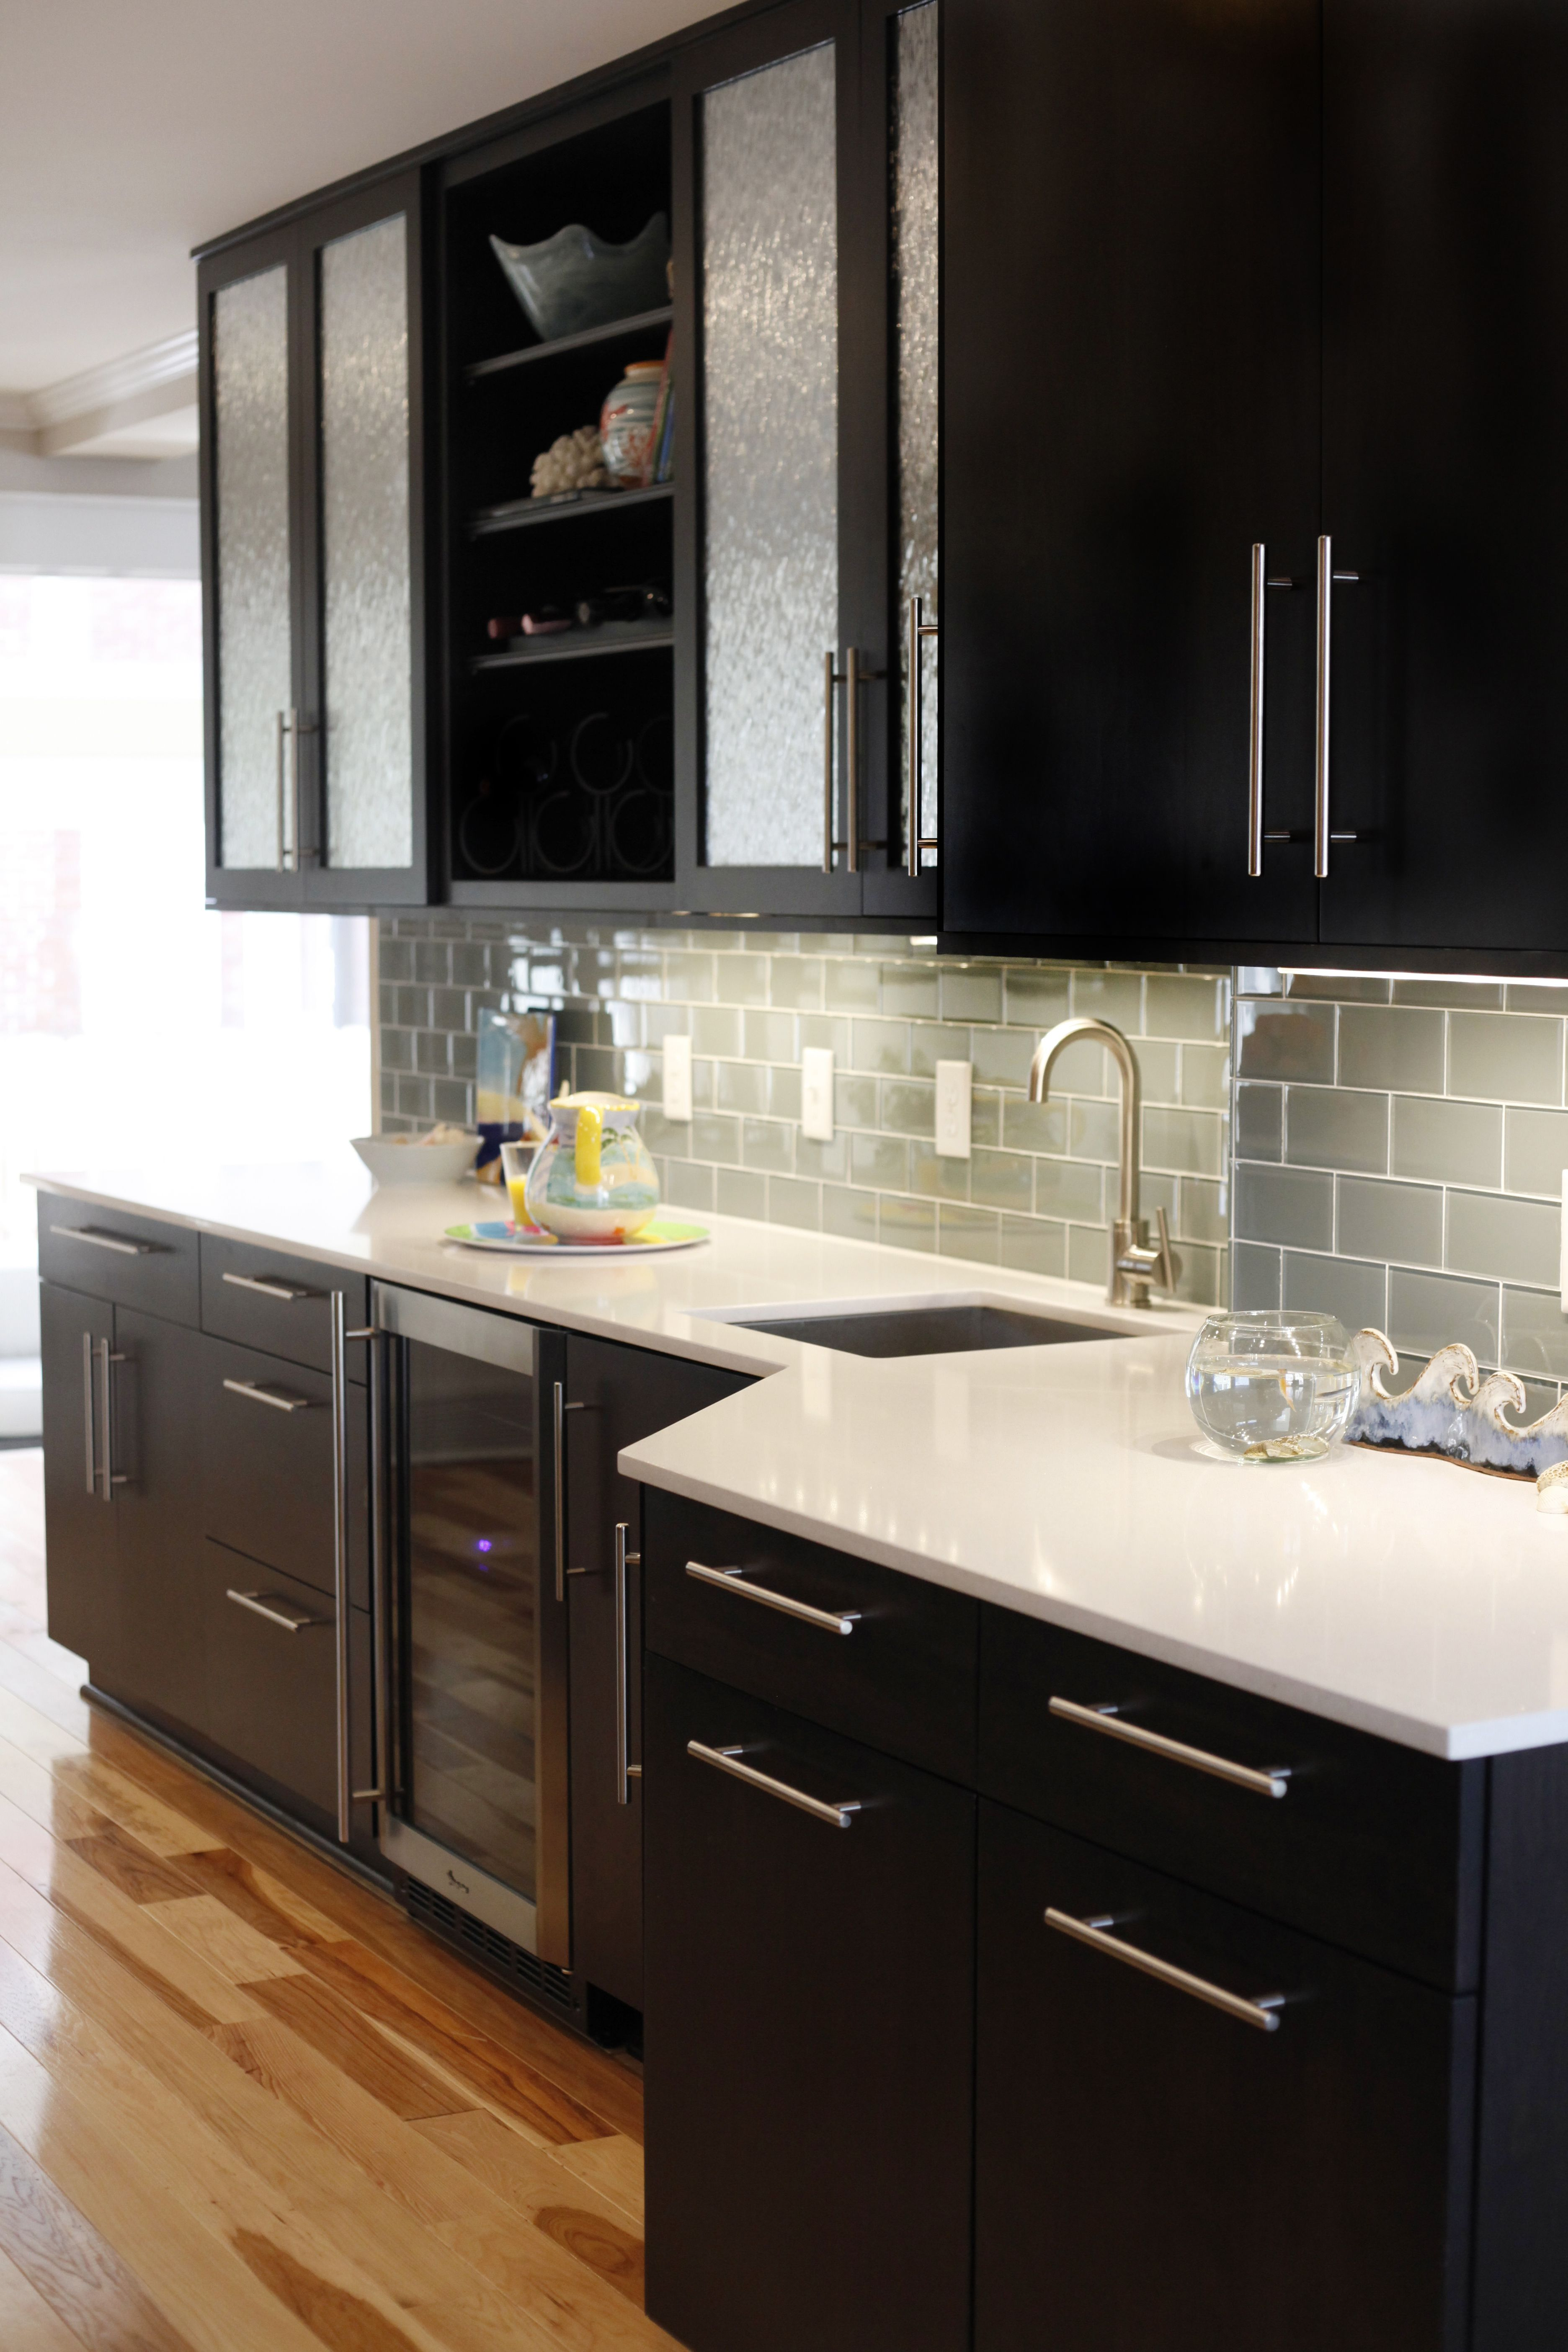 with integrated kitchen image for awesome steel stainless popular countertops xfile style sink countertop and custom tile edging